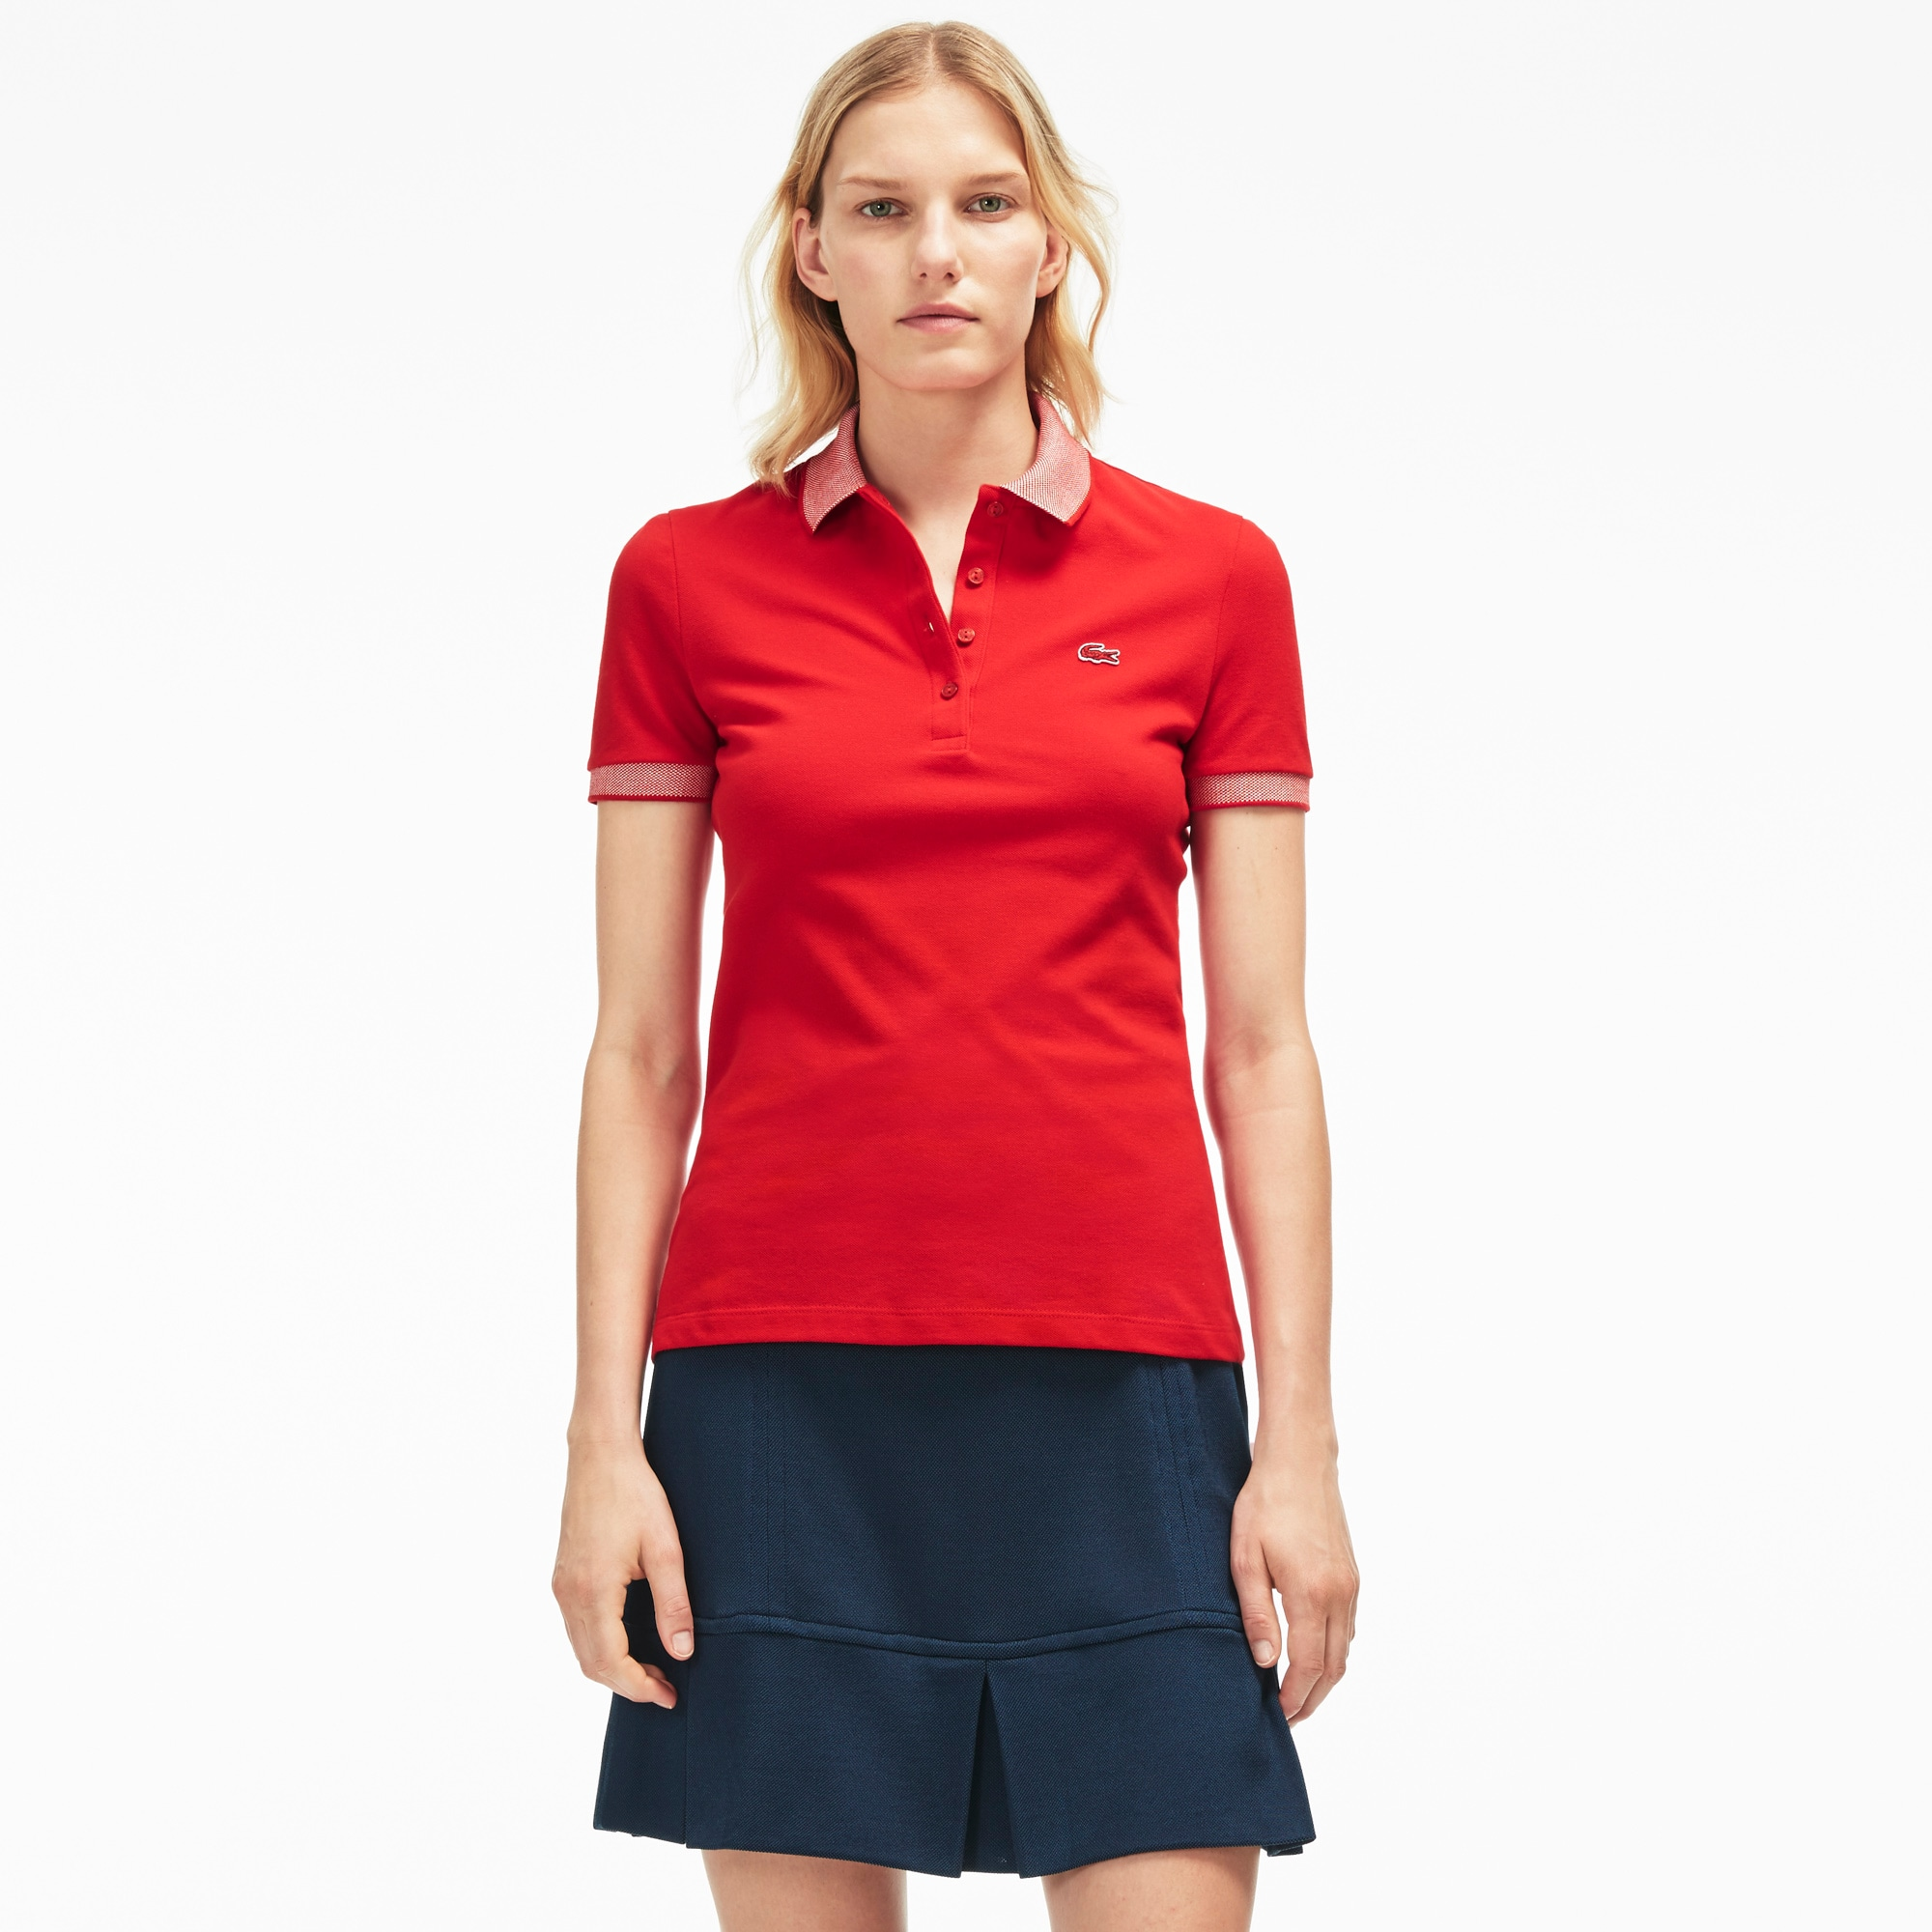 PF3074_564_20?sw=656&sh=656&sm=fit women's clothing on sale lacoste,Womens Clothing 5 Pounds Uk